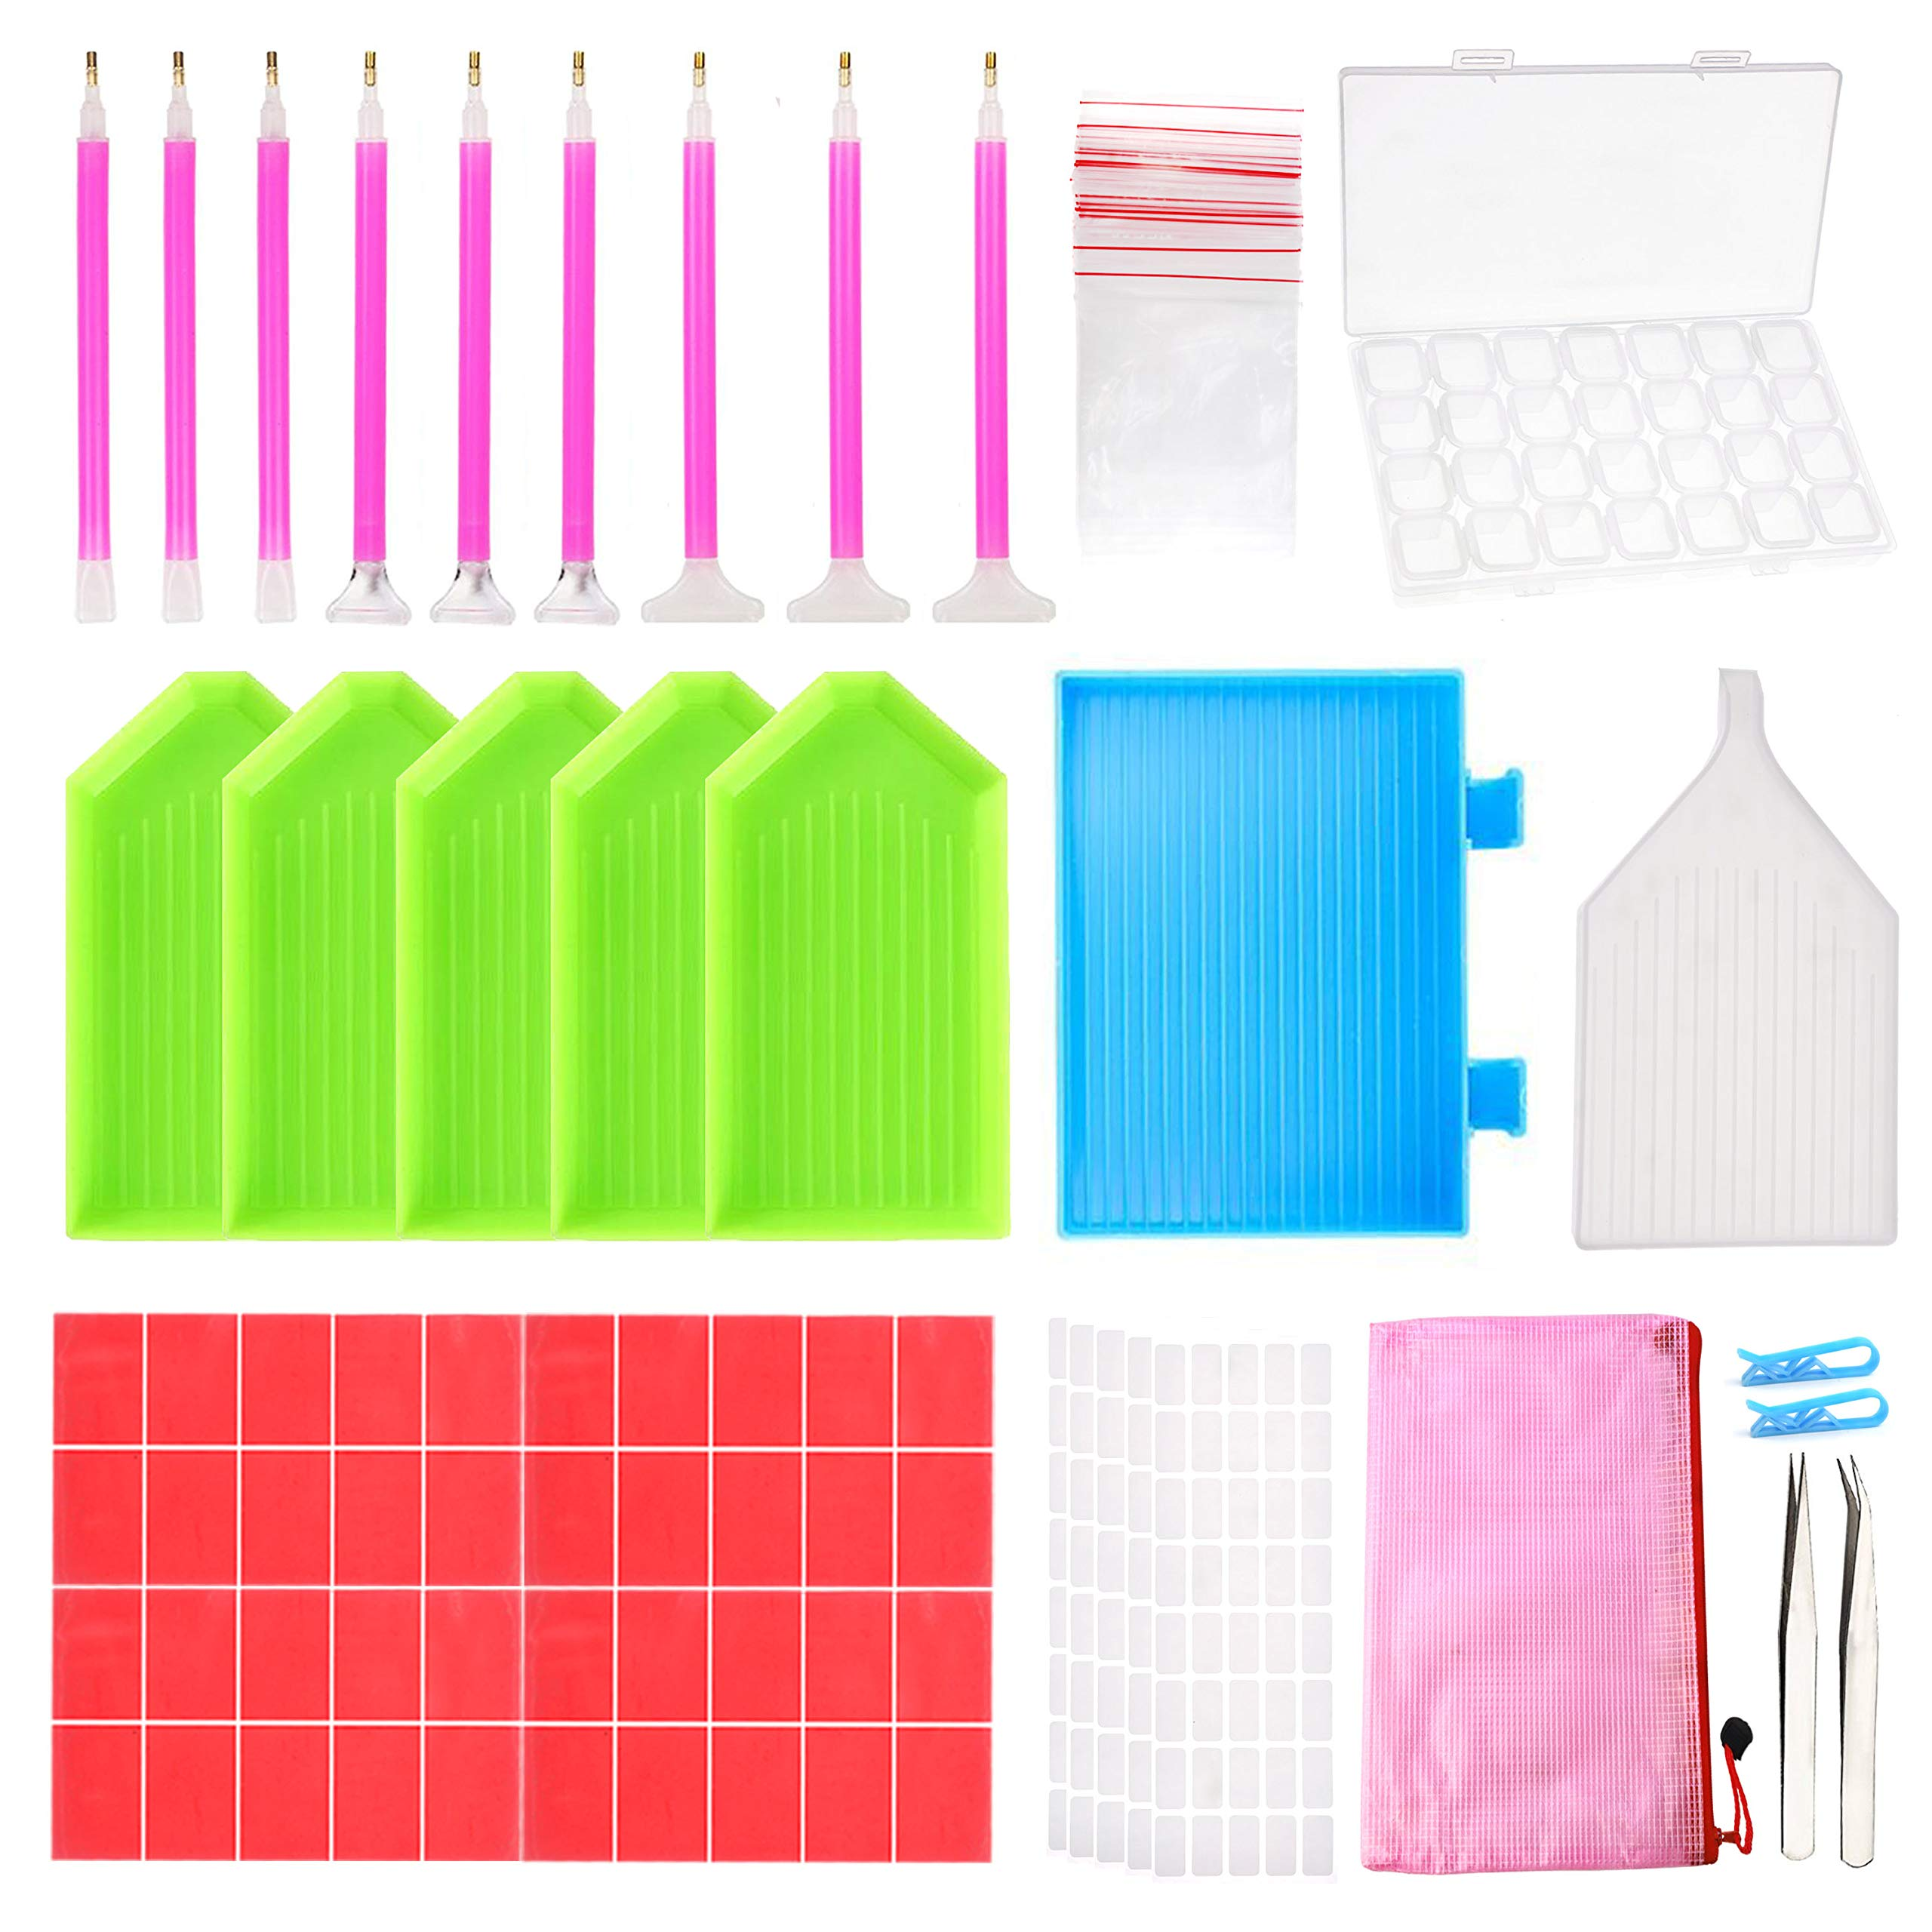 Outuxed 127pcs 5D DIY Diamond Painting Accessories Diamond Painting Tools Cross Stitch Tool Set with 28 Slots Diamond Embroidery Box and Stickers for Art Craft